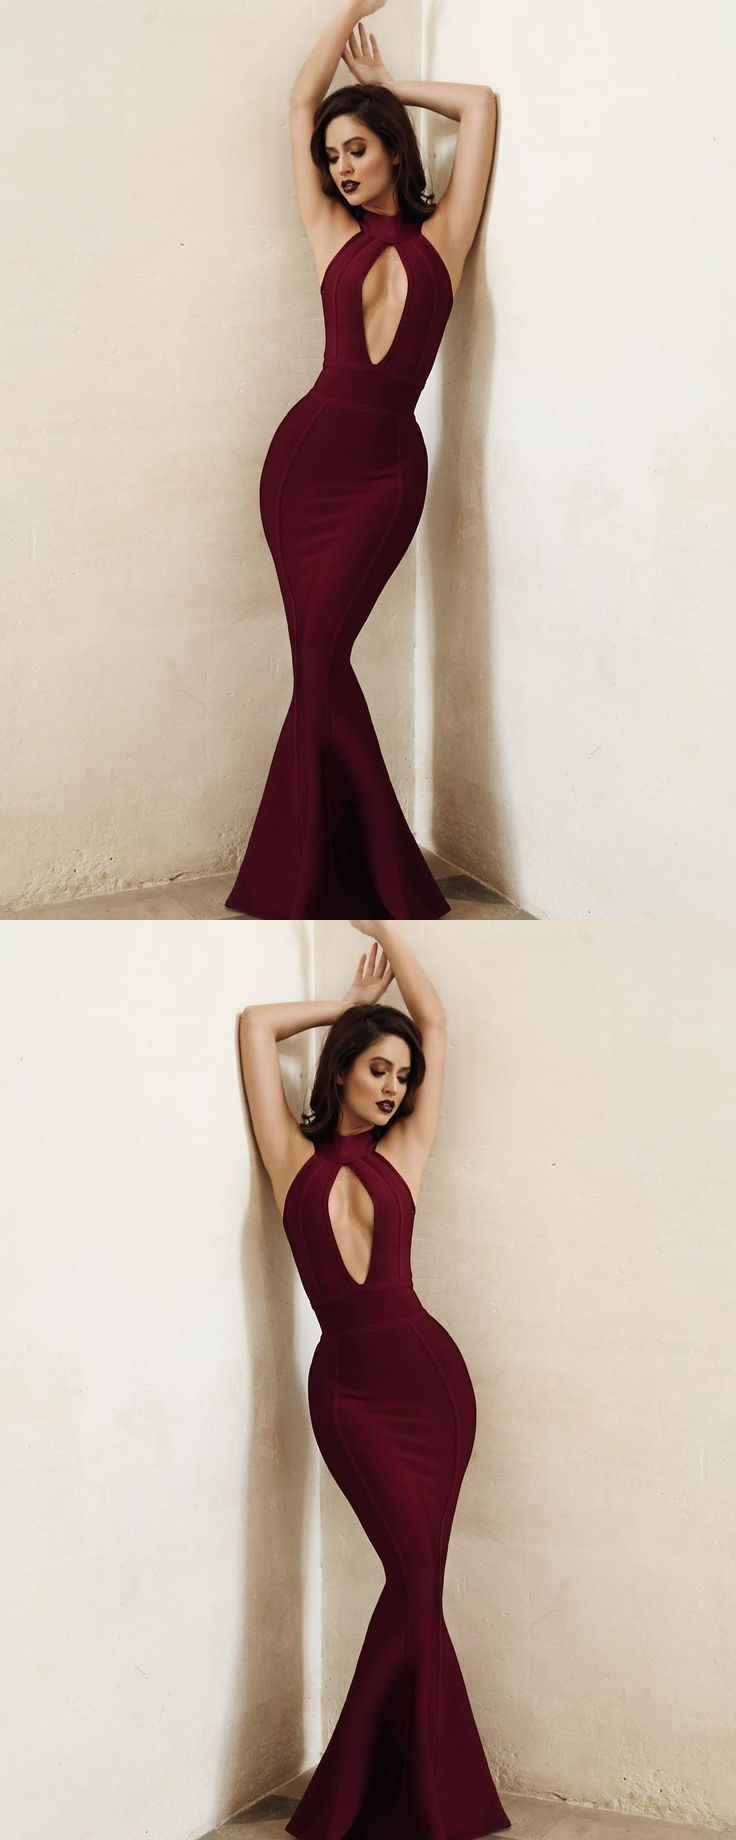 Burgundy Satin Prom Dresses Long Mermaid Evening Dresses Backless Formal Gowns Halter Party Dresses for Women 10703 #mermaid #mermaidpromdress #halterpromdress #backlessprom #burgundypromdresses #satinpromdresses #longpromdress #eveningdress #promdresses #promgown #partydresses #eveninggown #2018promdresses #newarrival #Prettylady